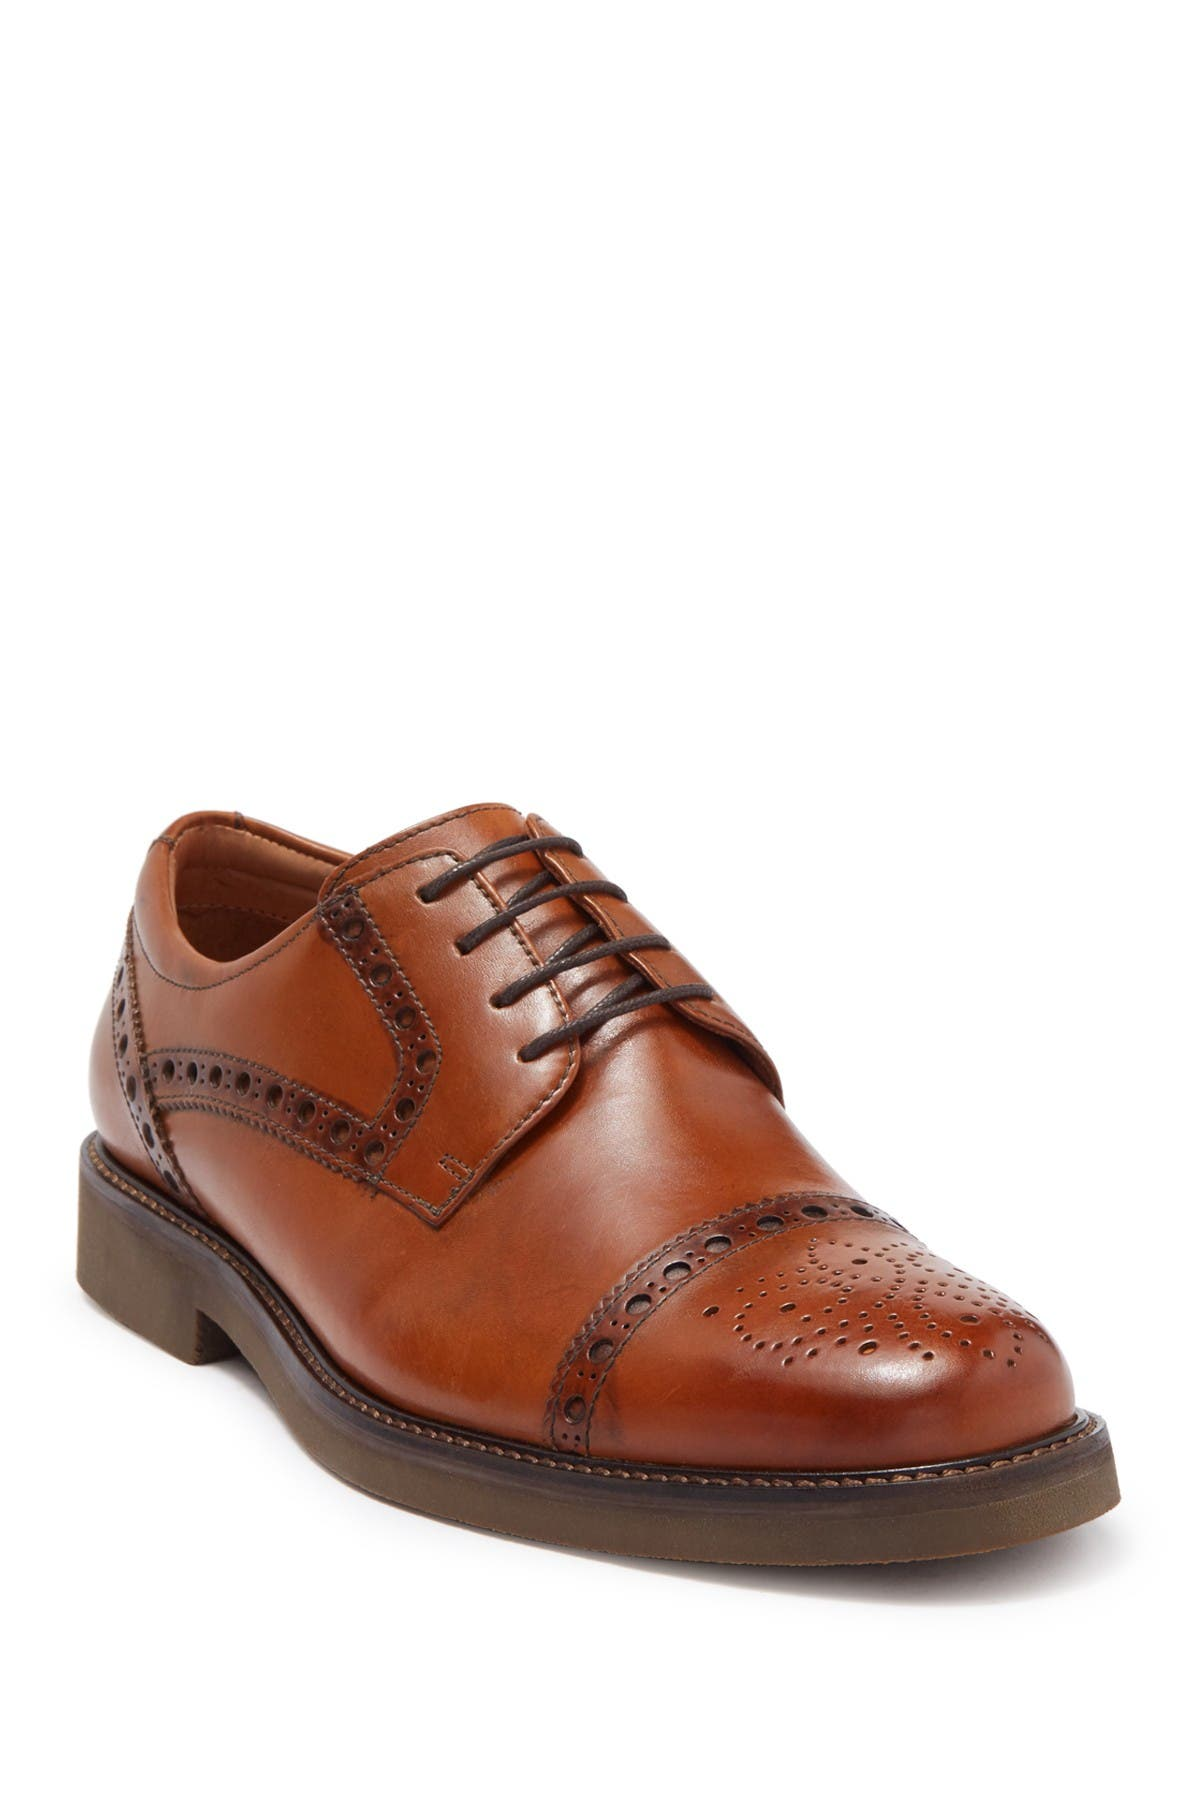 Image of Marc Joseph New York Banks Brogue Cap Toe Derby